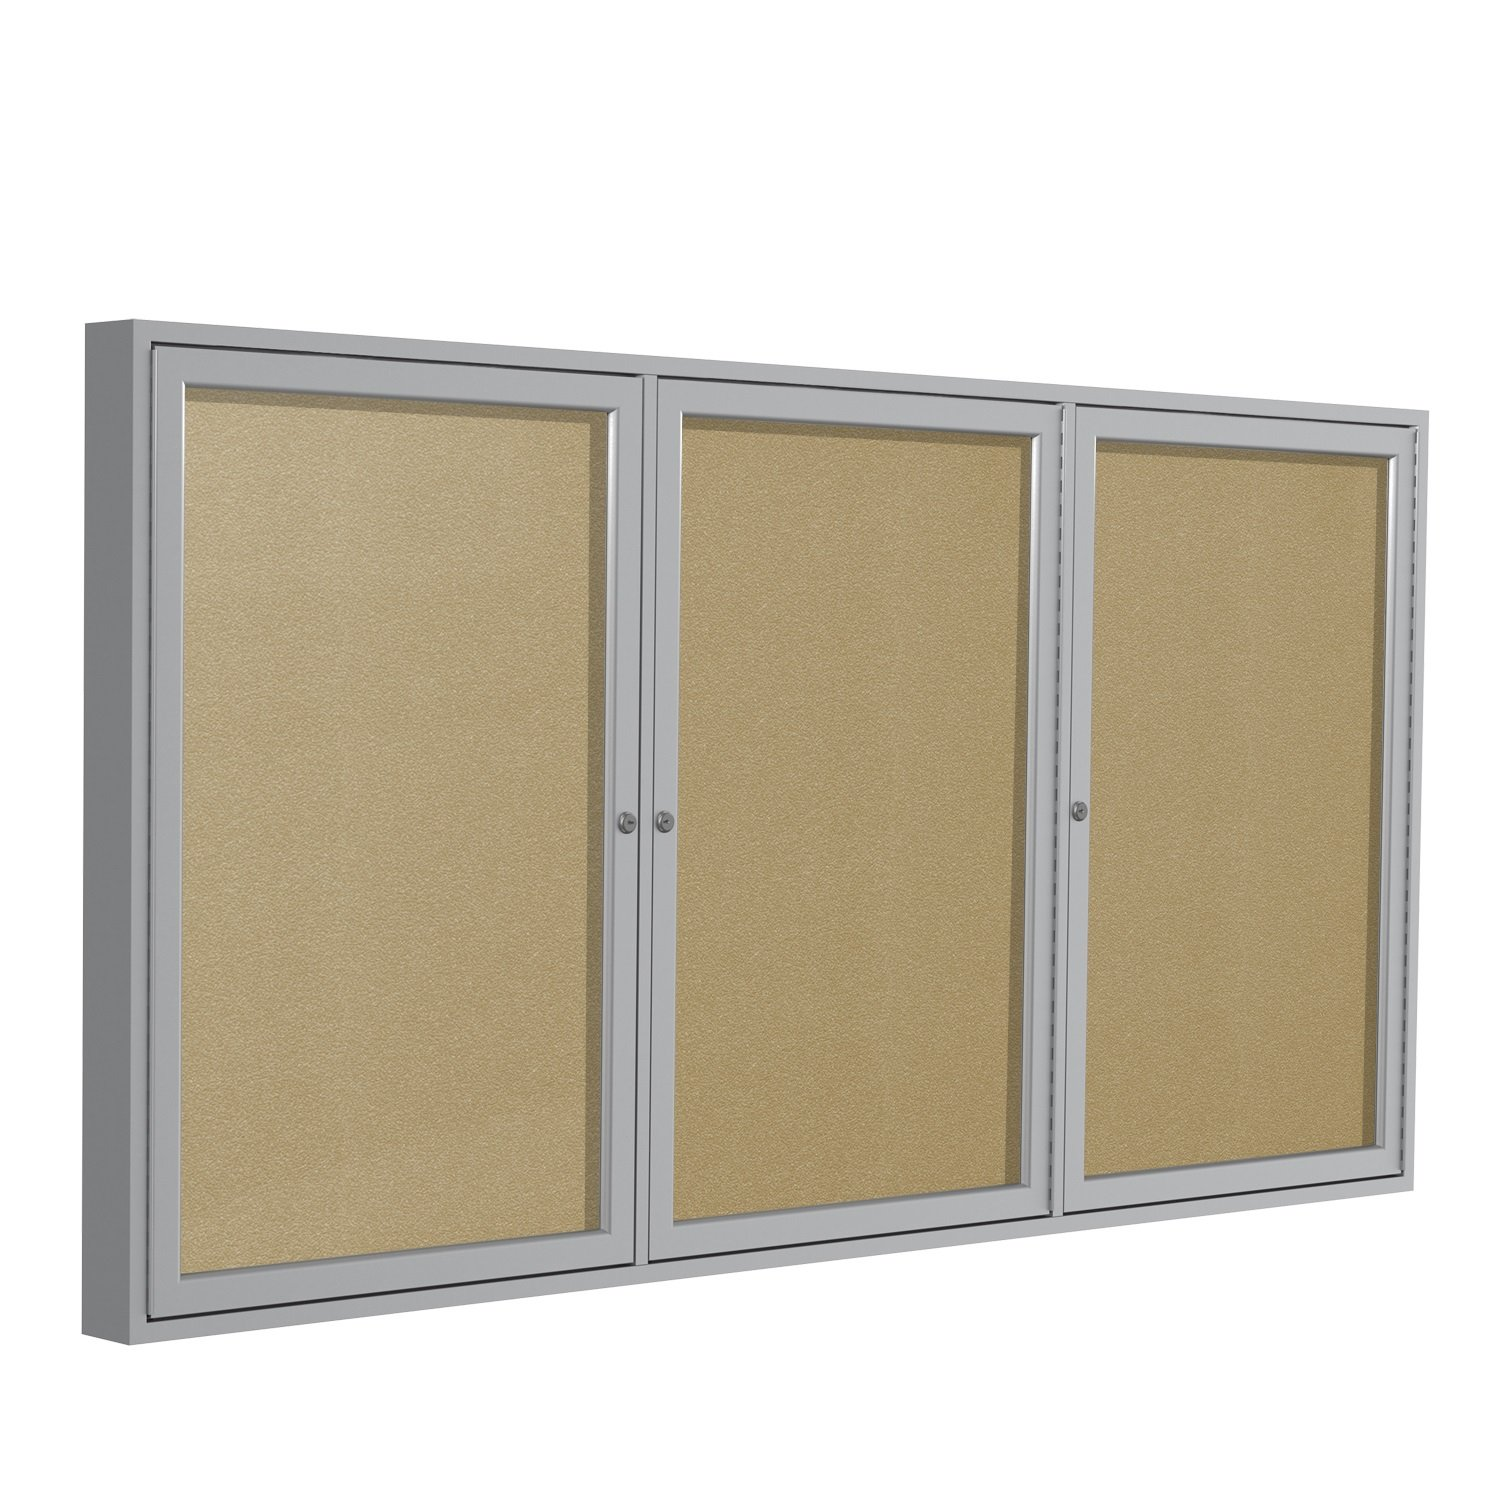 Ghent 36''x72''  3-Door Outdoor Enclosed Vinyl Bulletin Board, Shatter Resistant, with Lock, Satin Aluminum Frame - Caramel (PA33672VX-181), Made in the USA